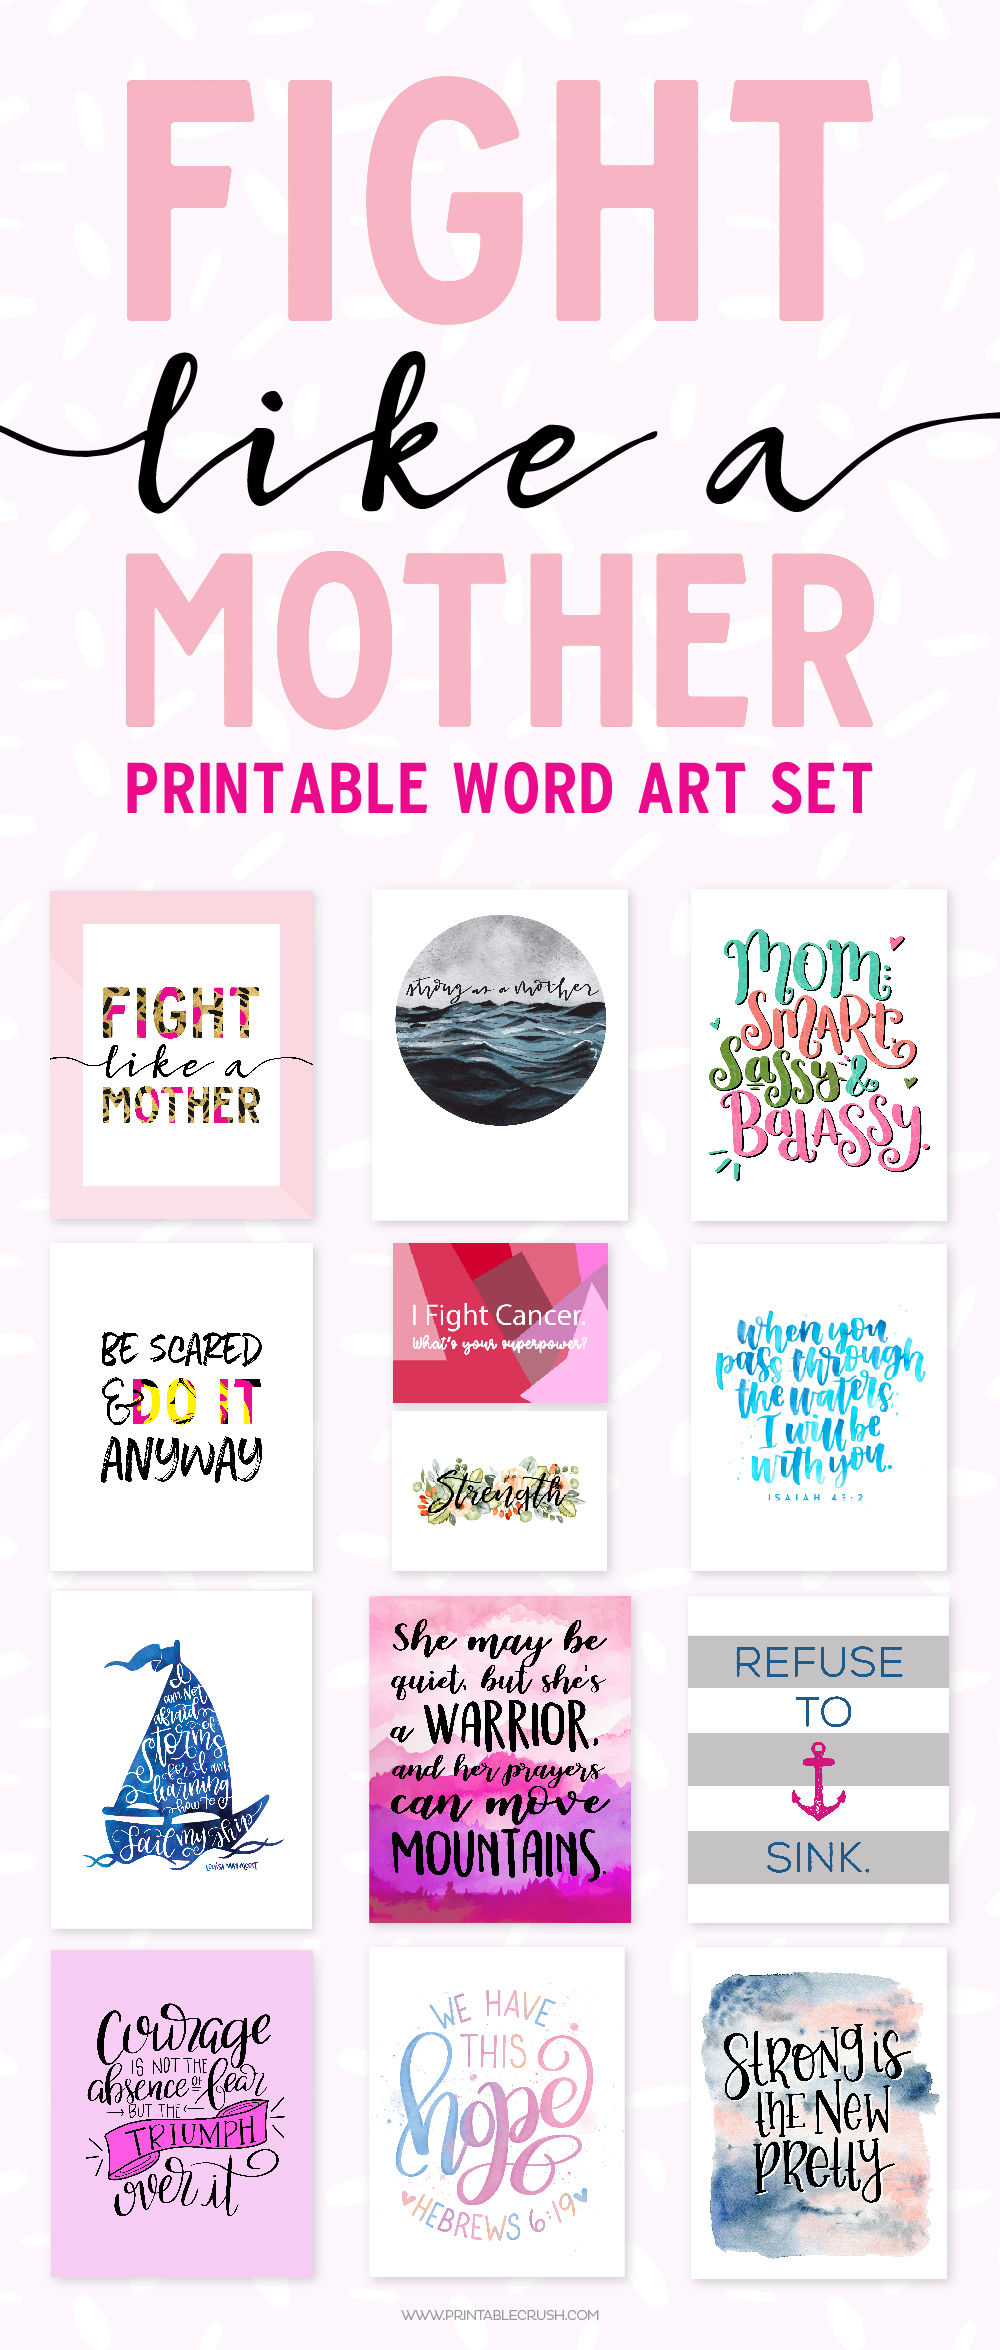 Get this Fight Like a Mother Printable Word Art Set as a gift for the strong women in your life and choose your donation amount to help a family in need.